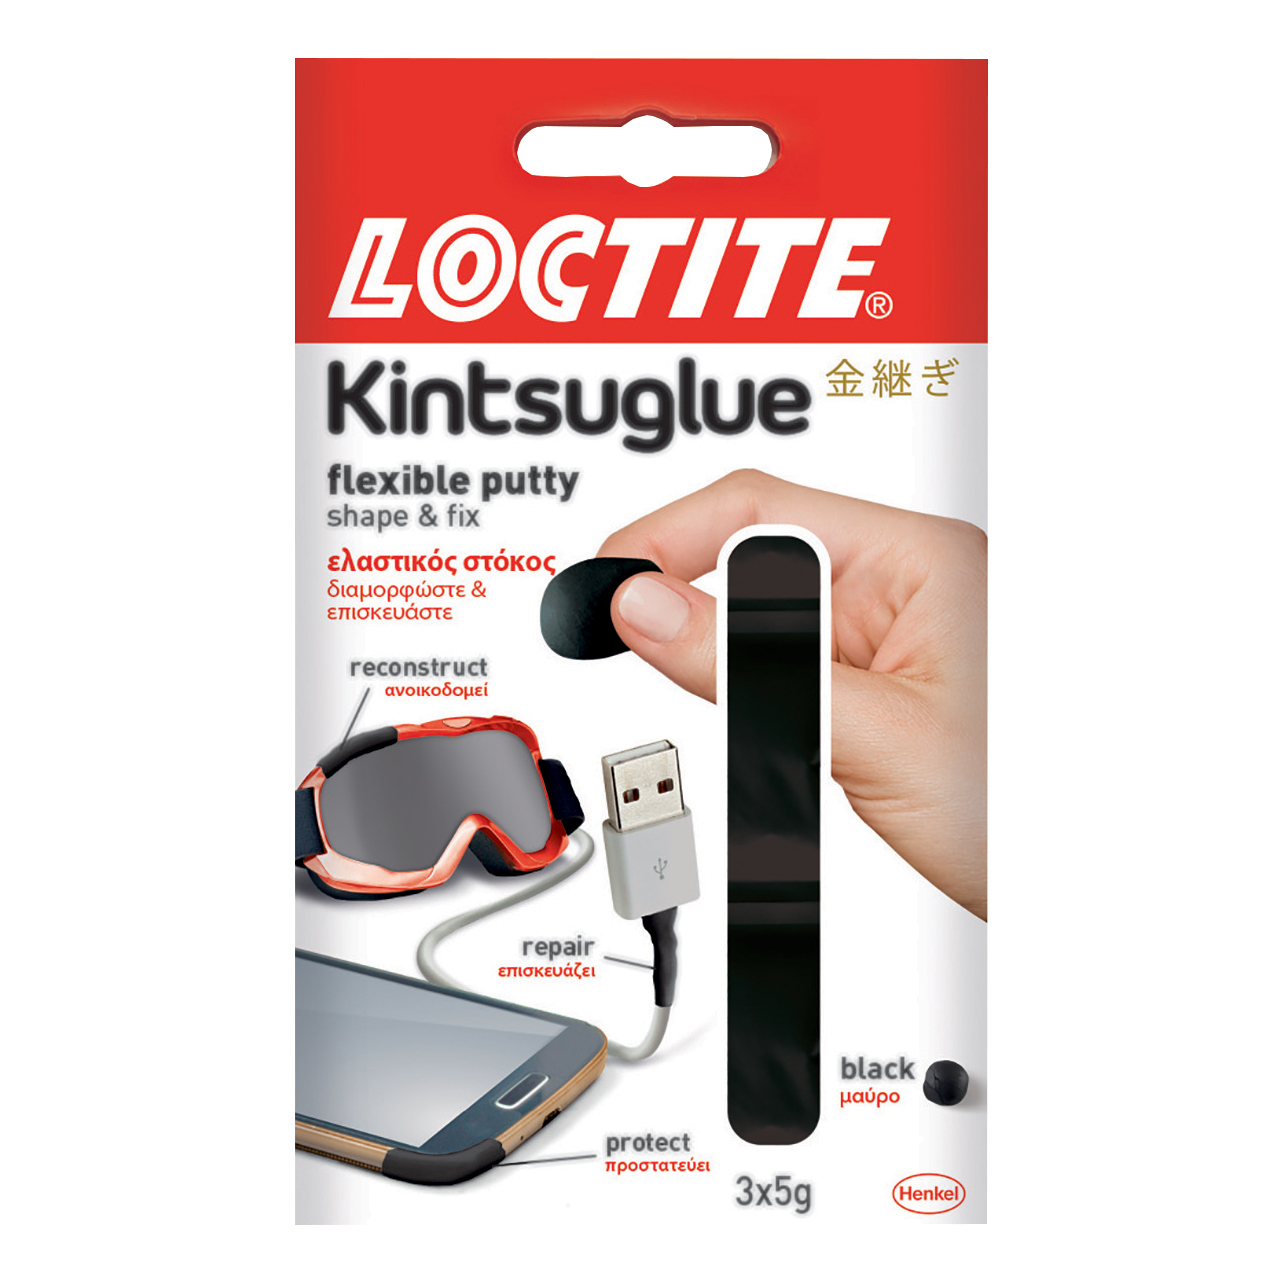 Loctite Kintsuglue Waterproof Flexible Putty to Repair Objects 3x5g Black Ref 2239183